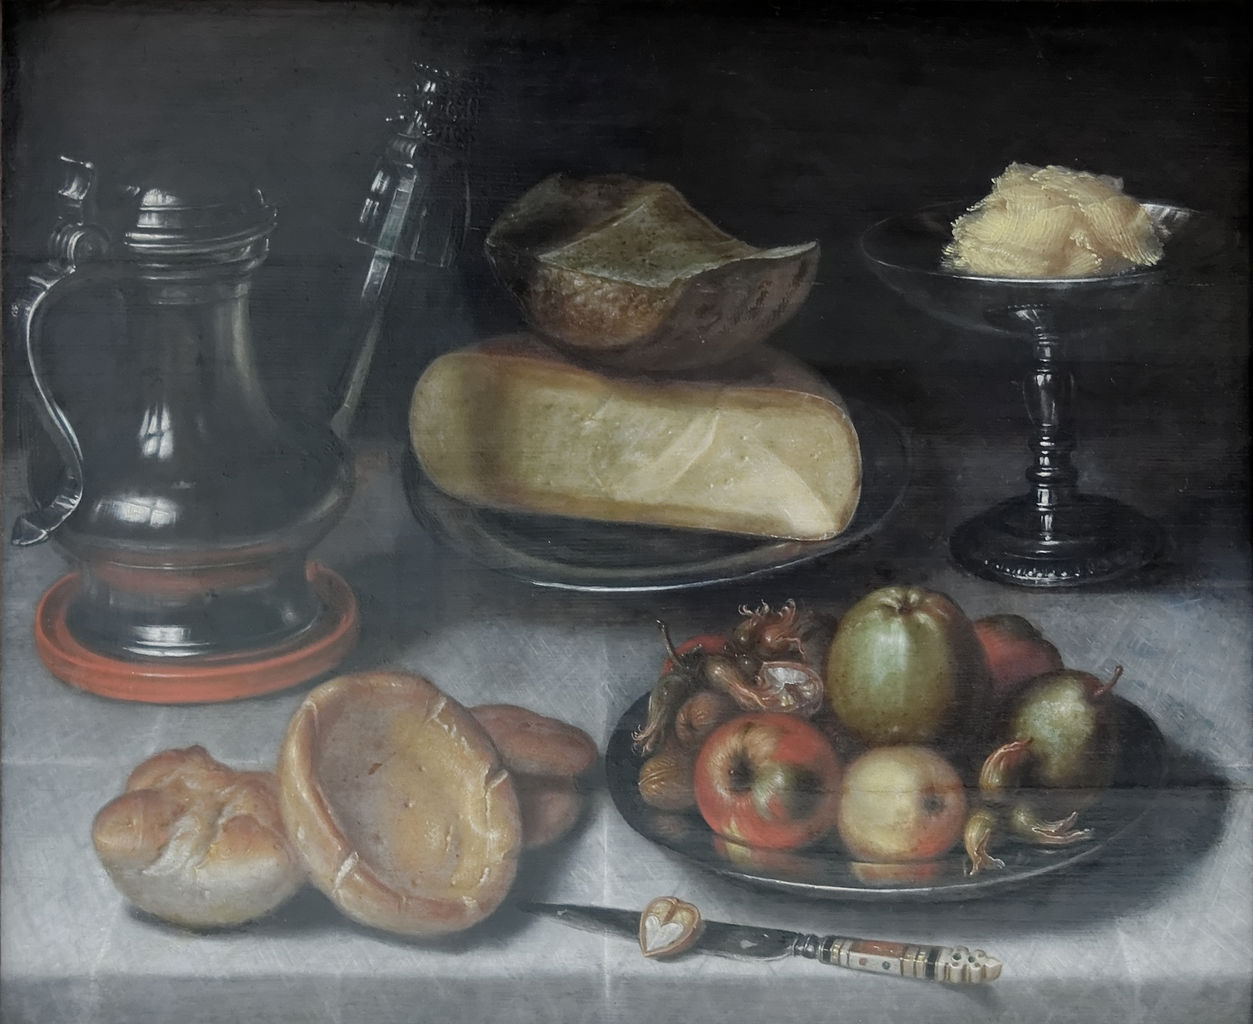 有锡壶、水果和奶酪的静物画_Still Life with Pewter Jug, Fruit and Cheese-弗洛里斯·范·戴克